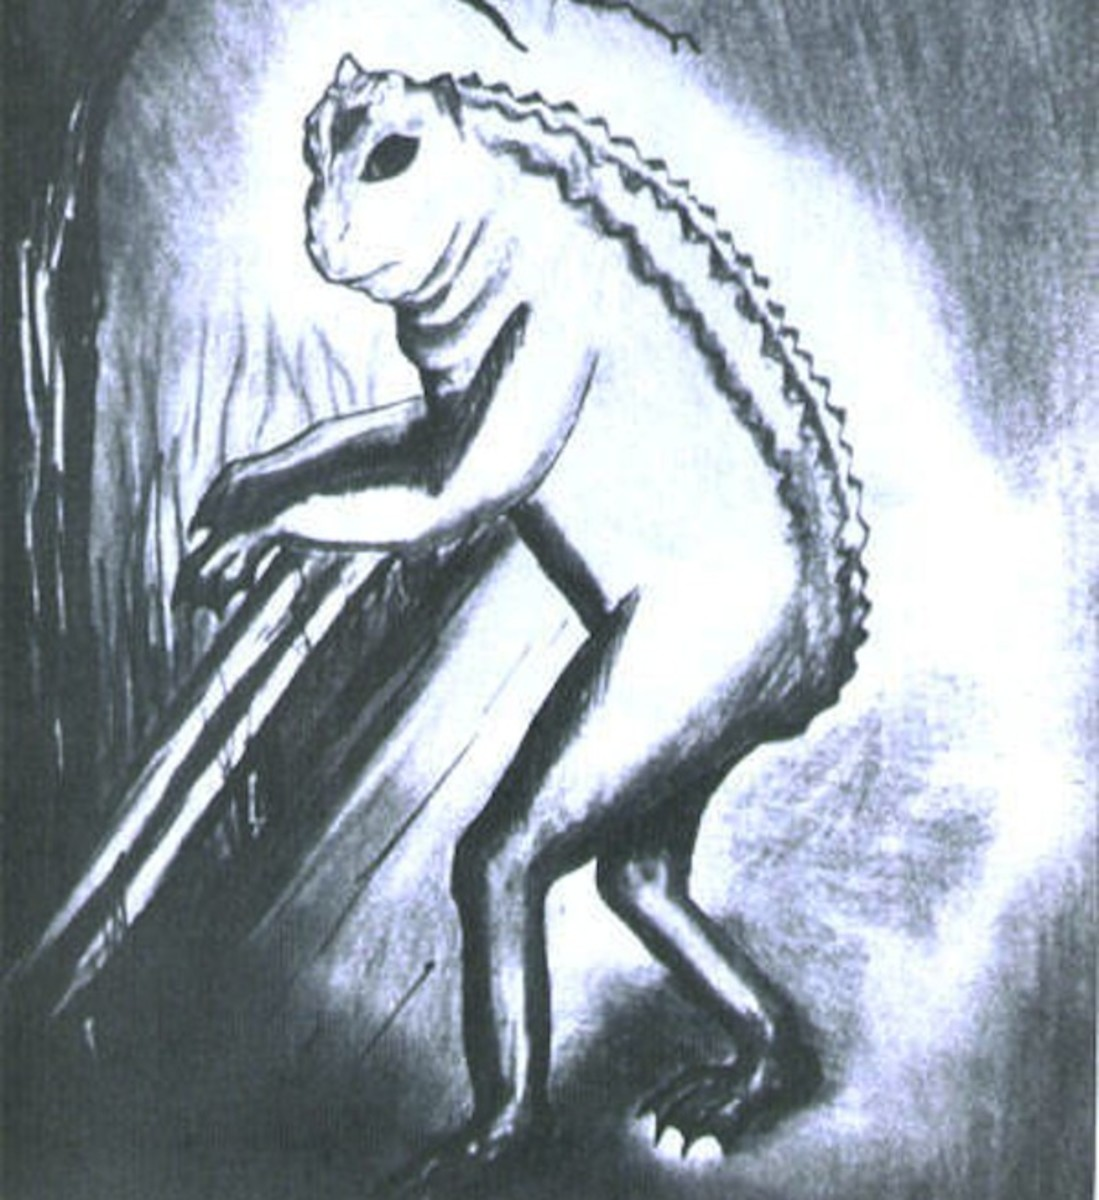 An artist's depiction of a Loveland Frog climbing over a guardrail.